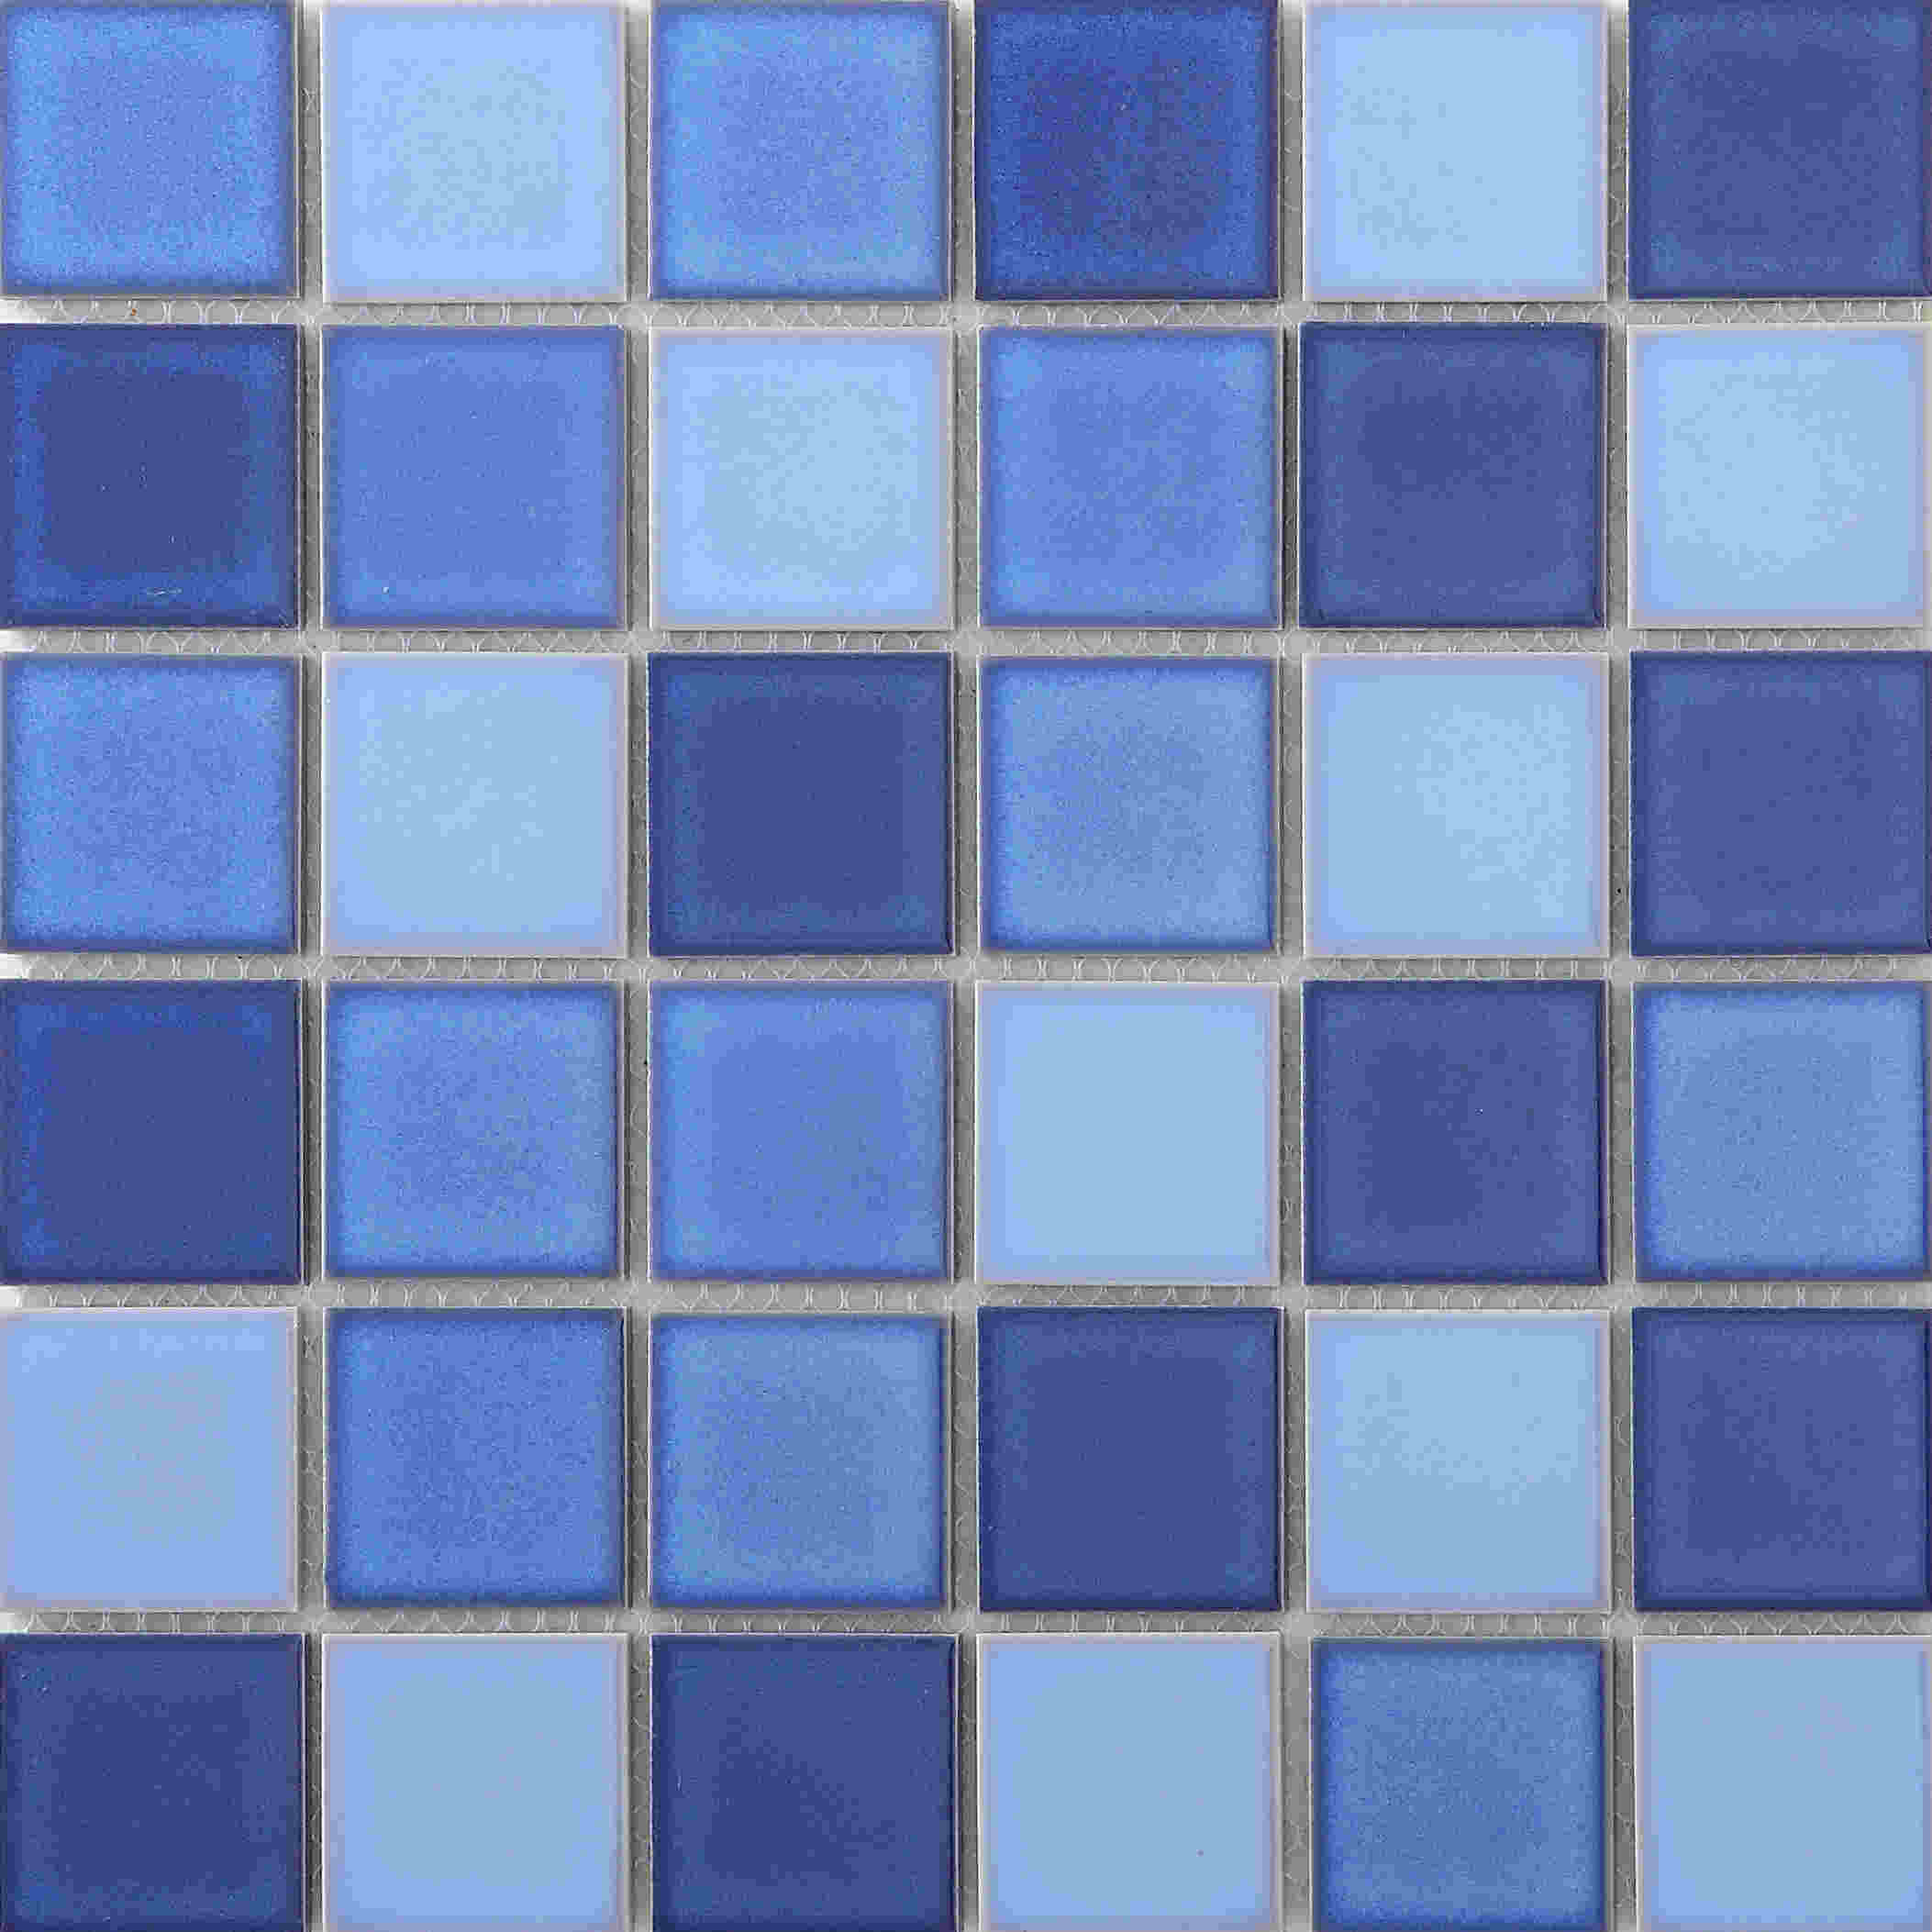 China glazed ceramic mosaic tile for swimming pool with different glazed ceramic mosaic tile for swimming pool with different pattern design doublecrazyfo Image collections